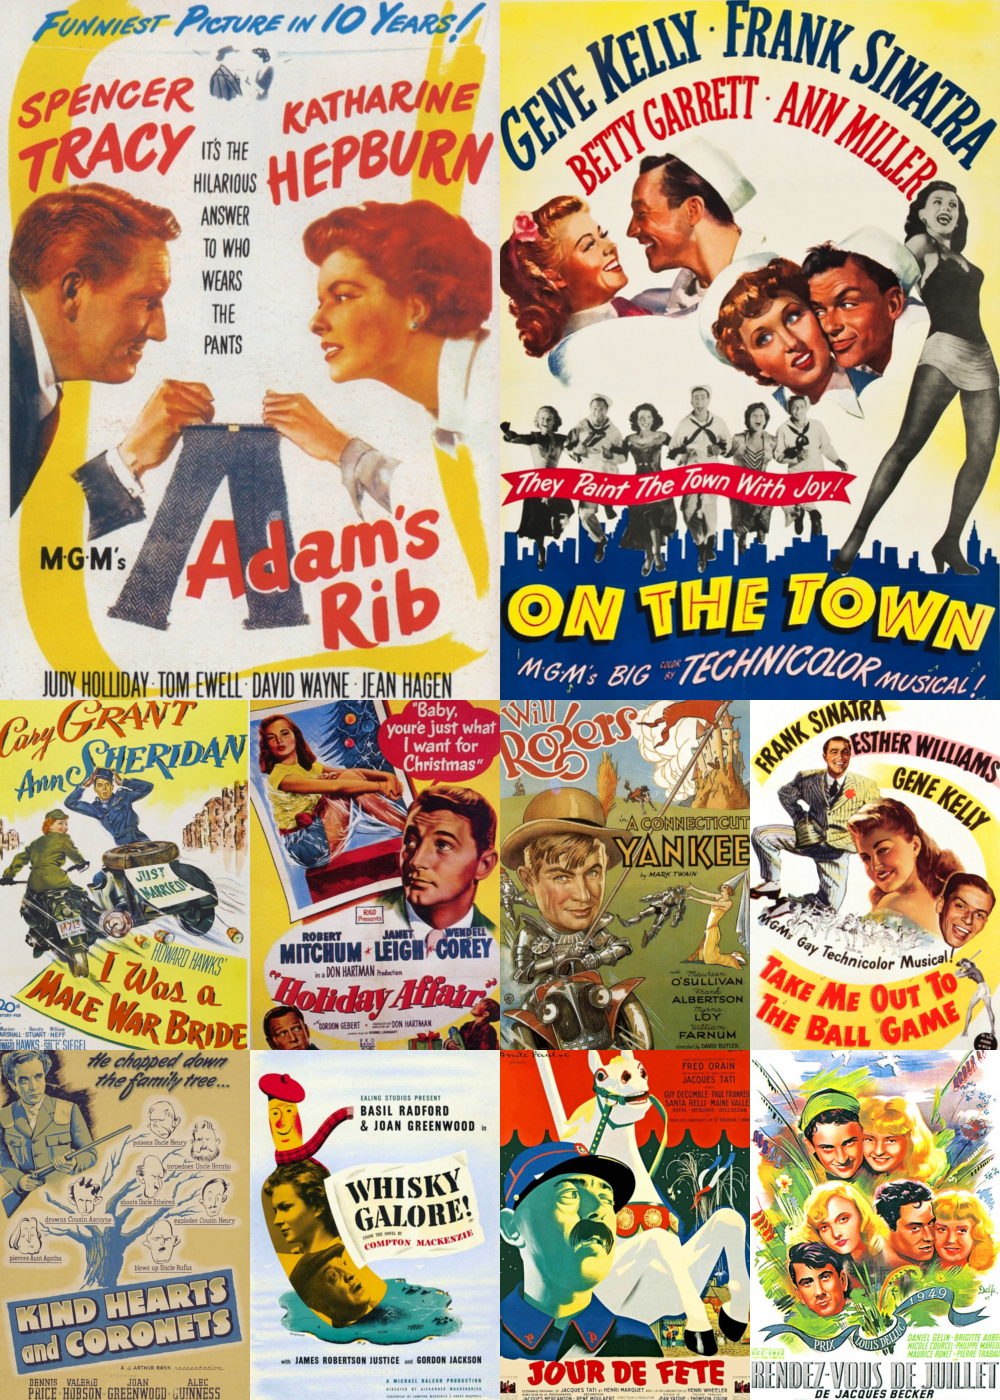 Top 10 Comedy Movies 1949